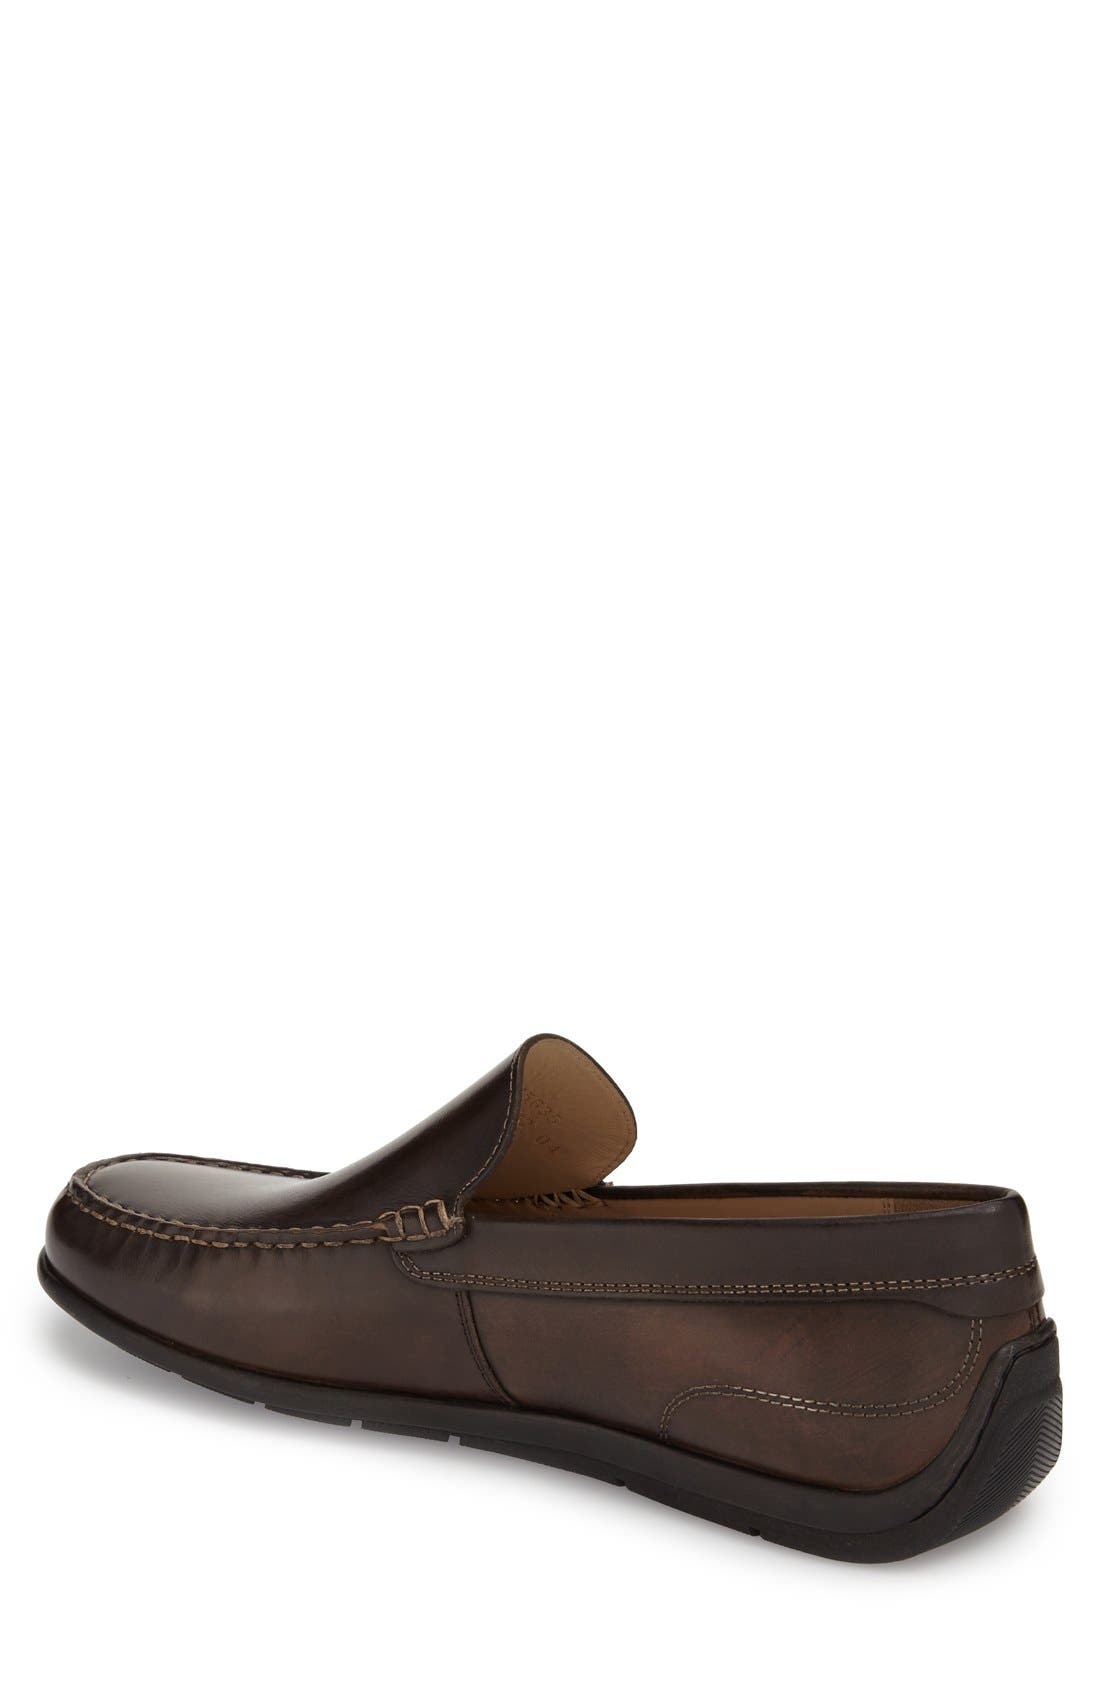 ECCO, 'Classic Moc II' Venetian Loafer, Alternate thumbnail 2, color, COFFEE LEATHER